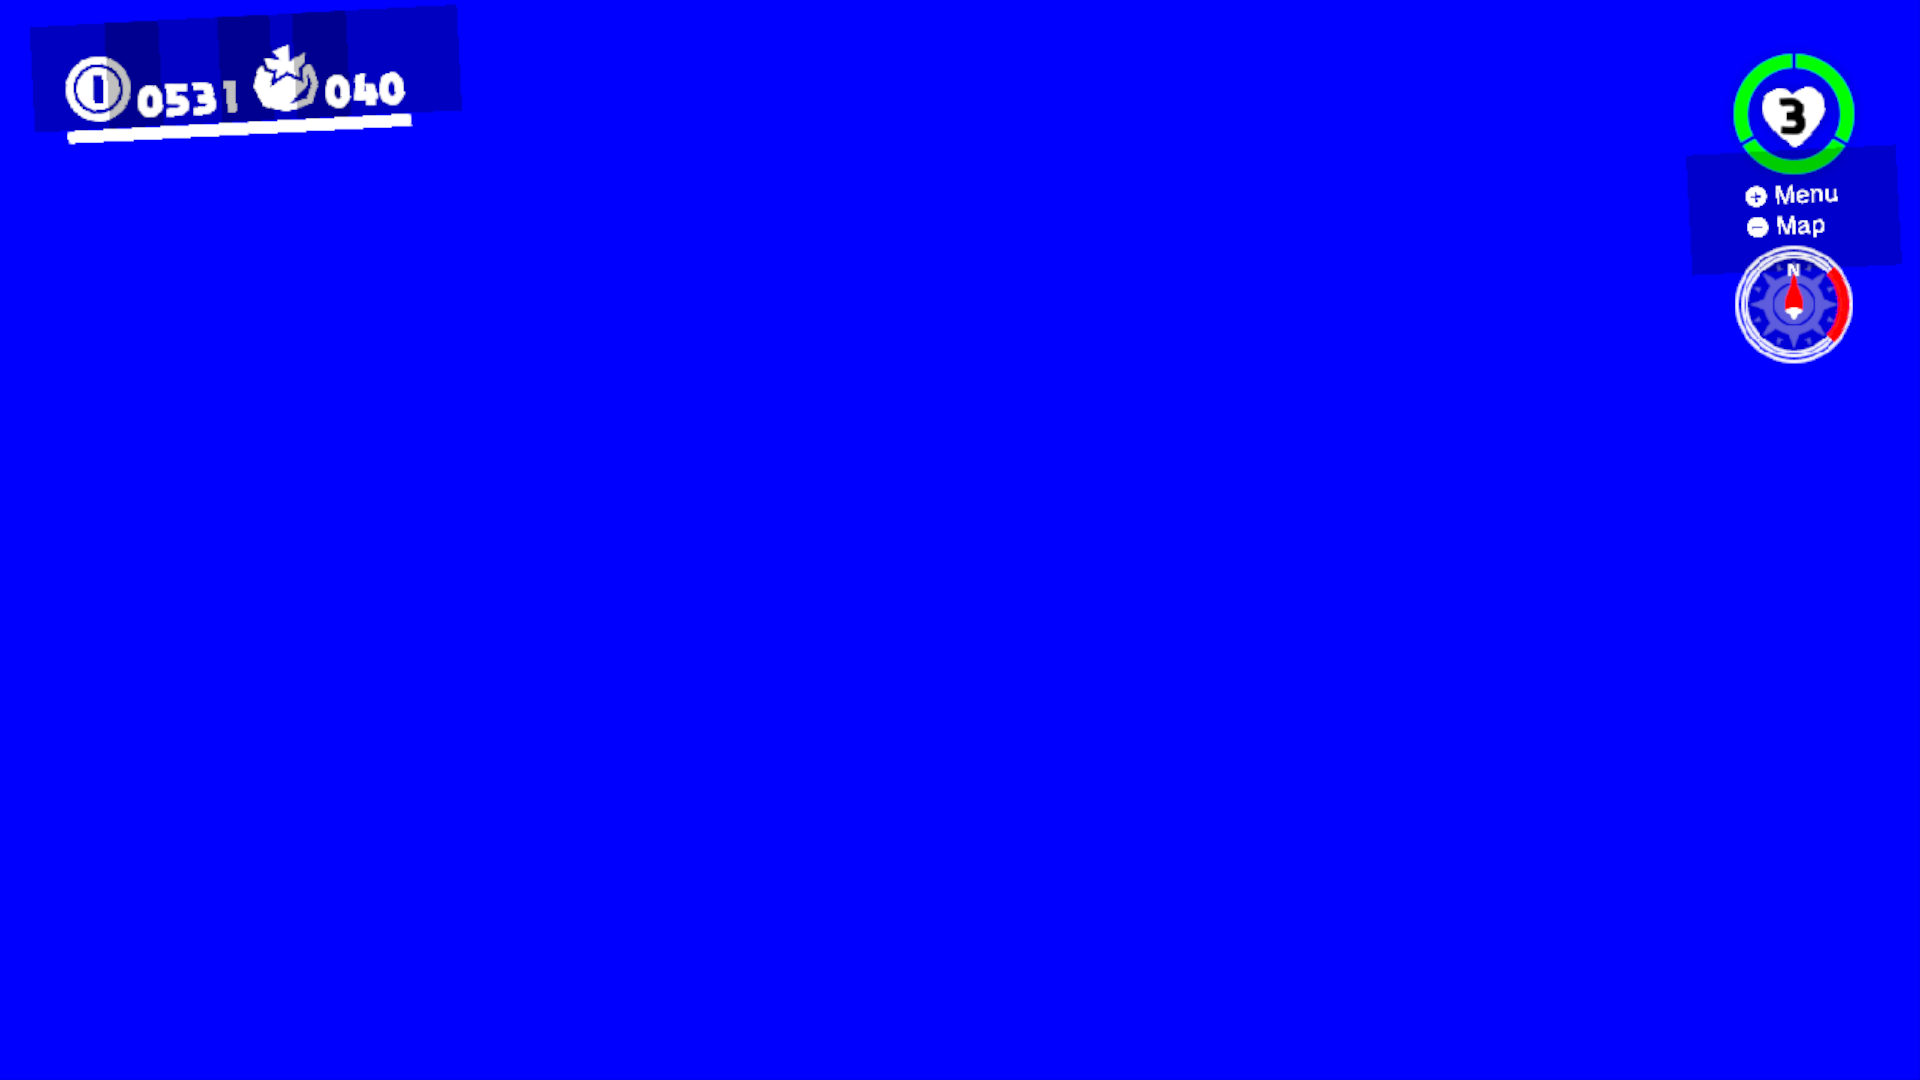 BlueScreen occurs sometimes when capturing, going to 8 bit